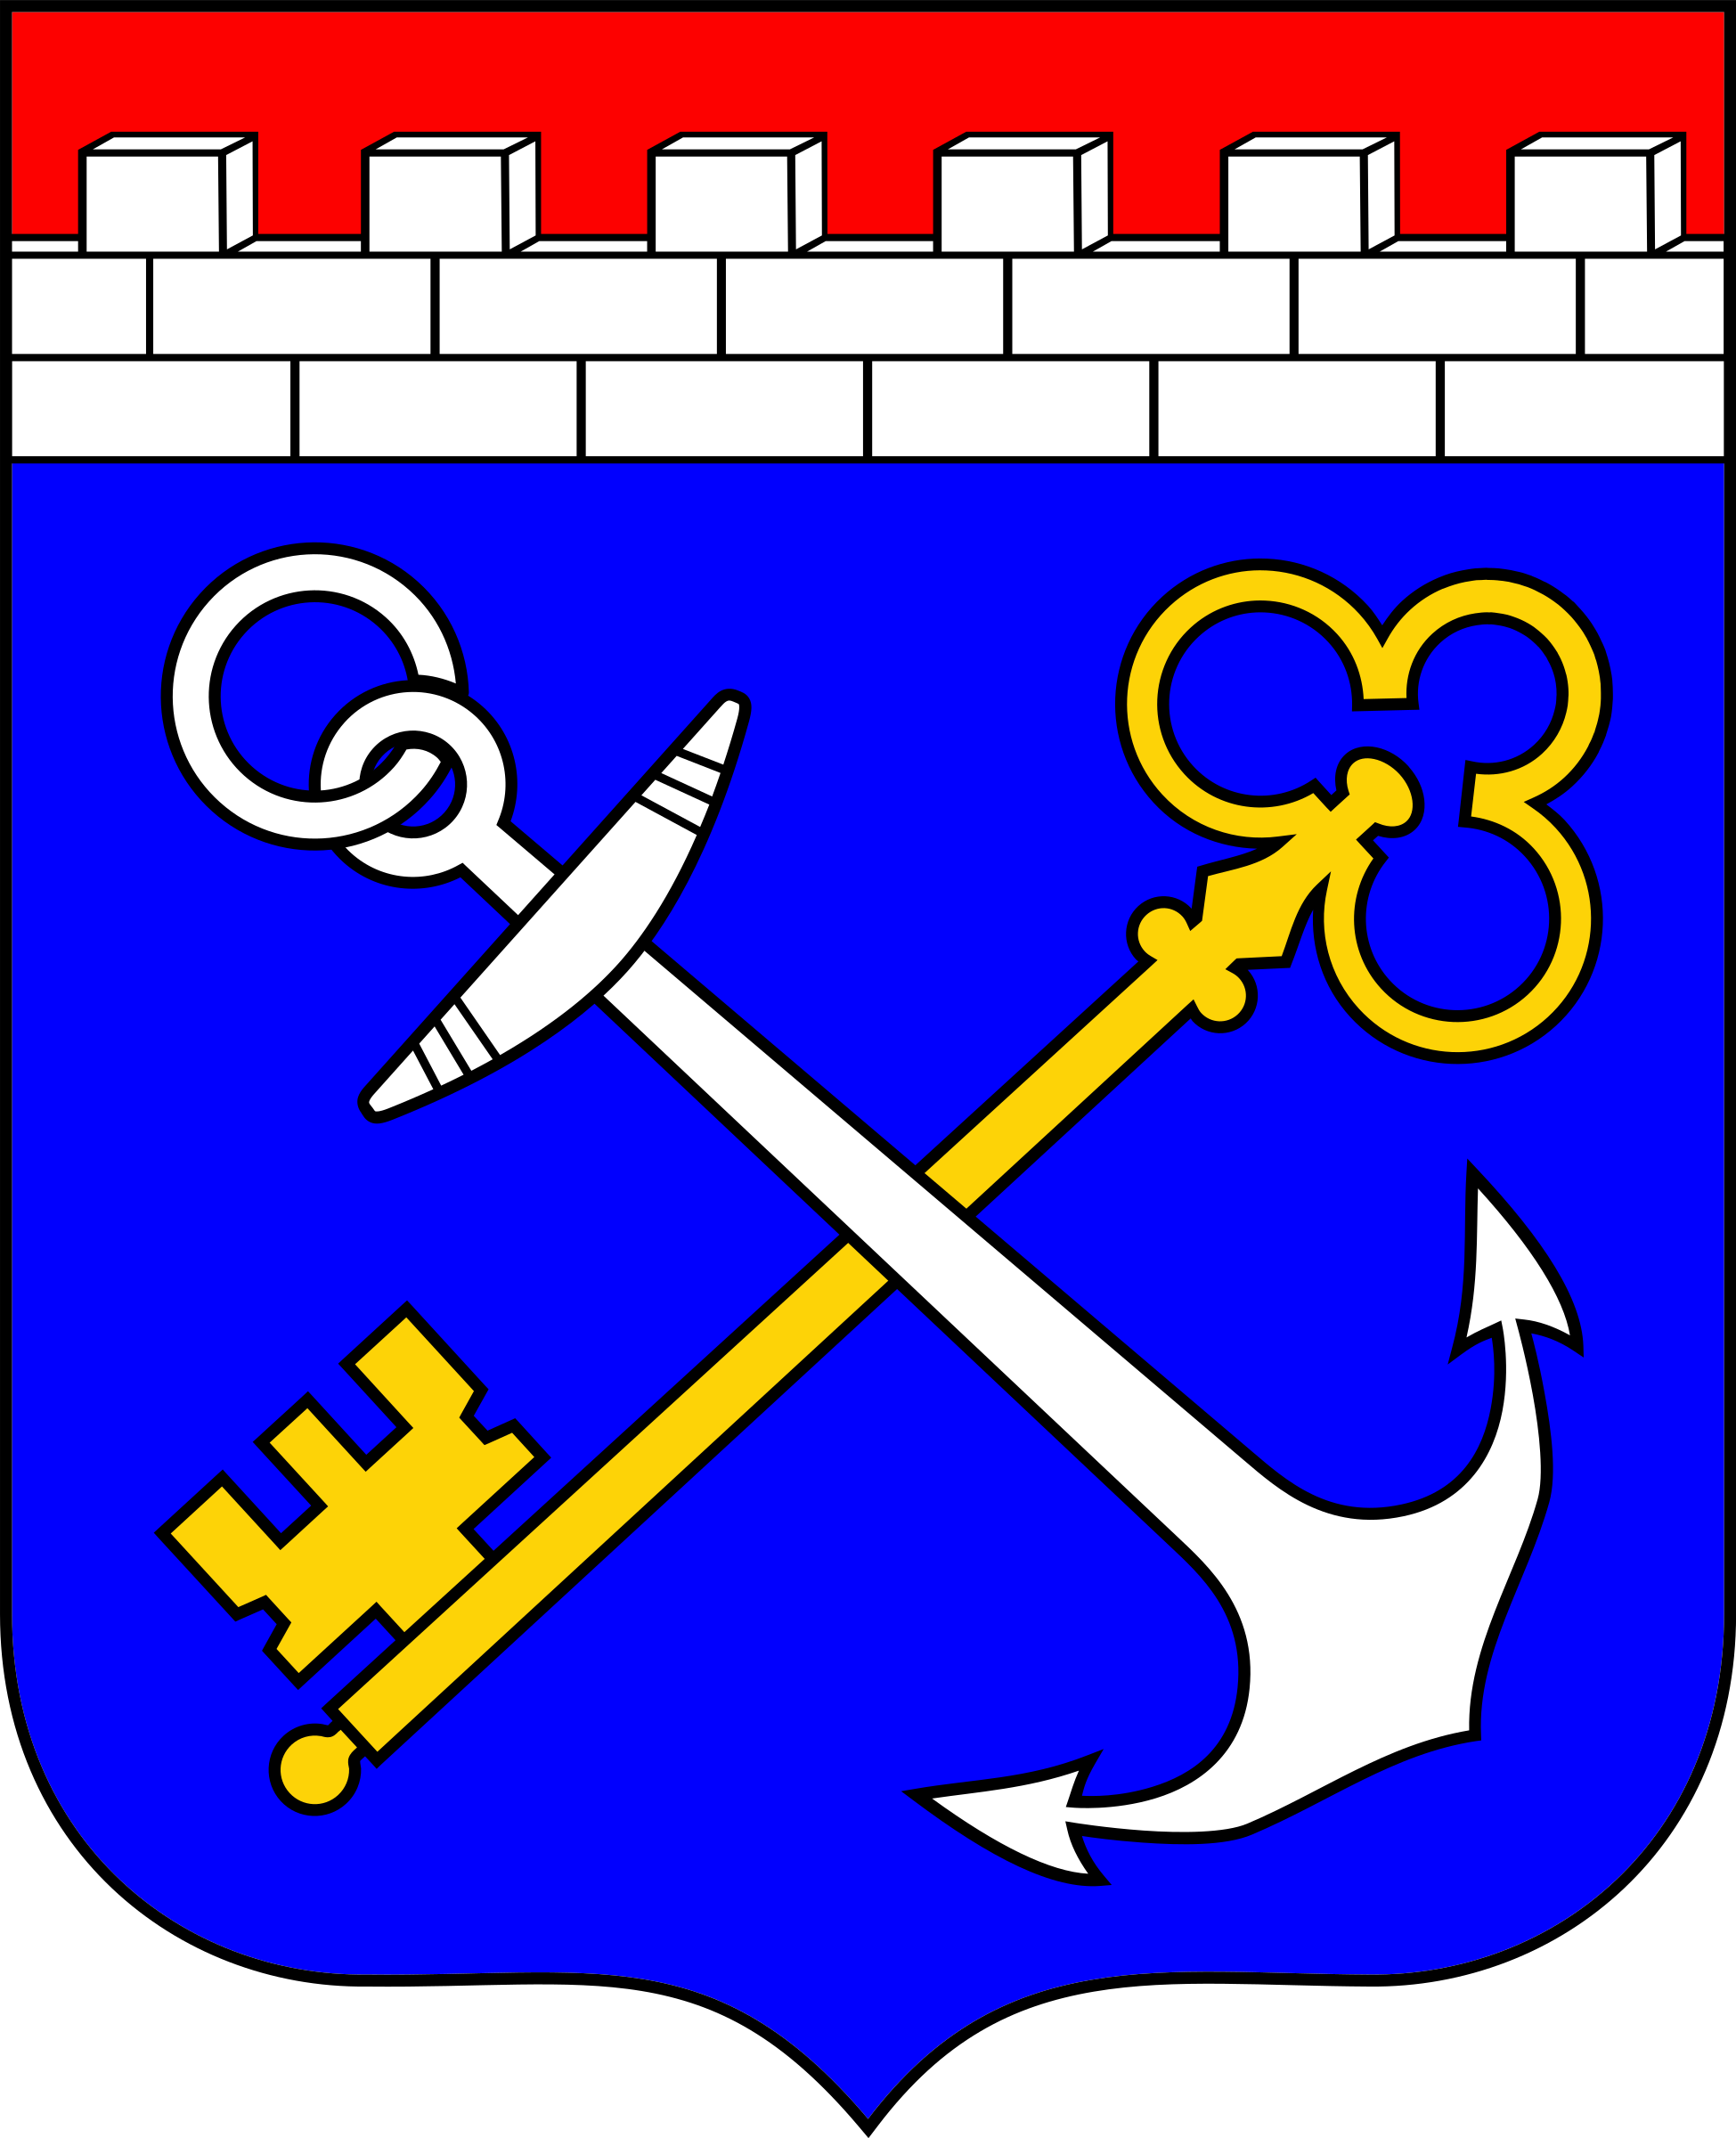 Coat of arms of Leningrad region by rones